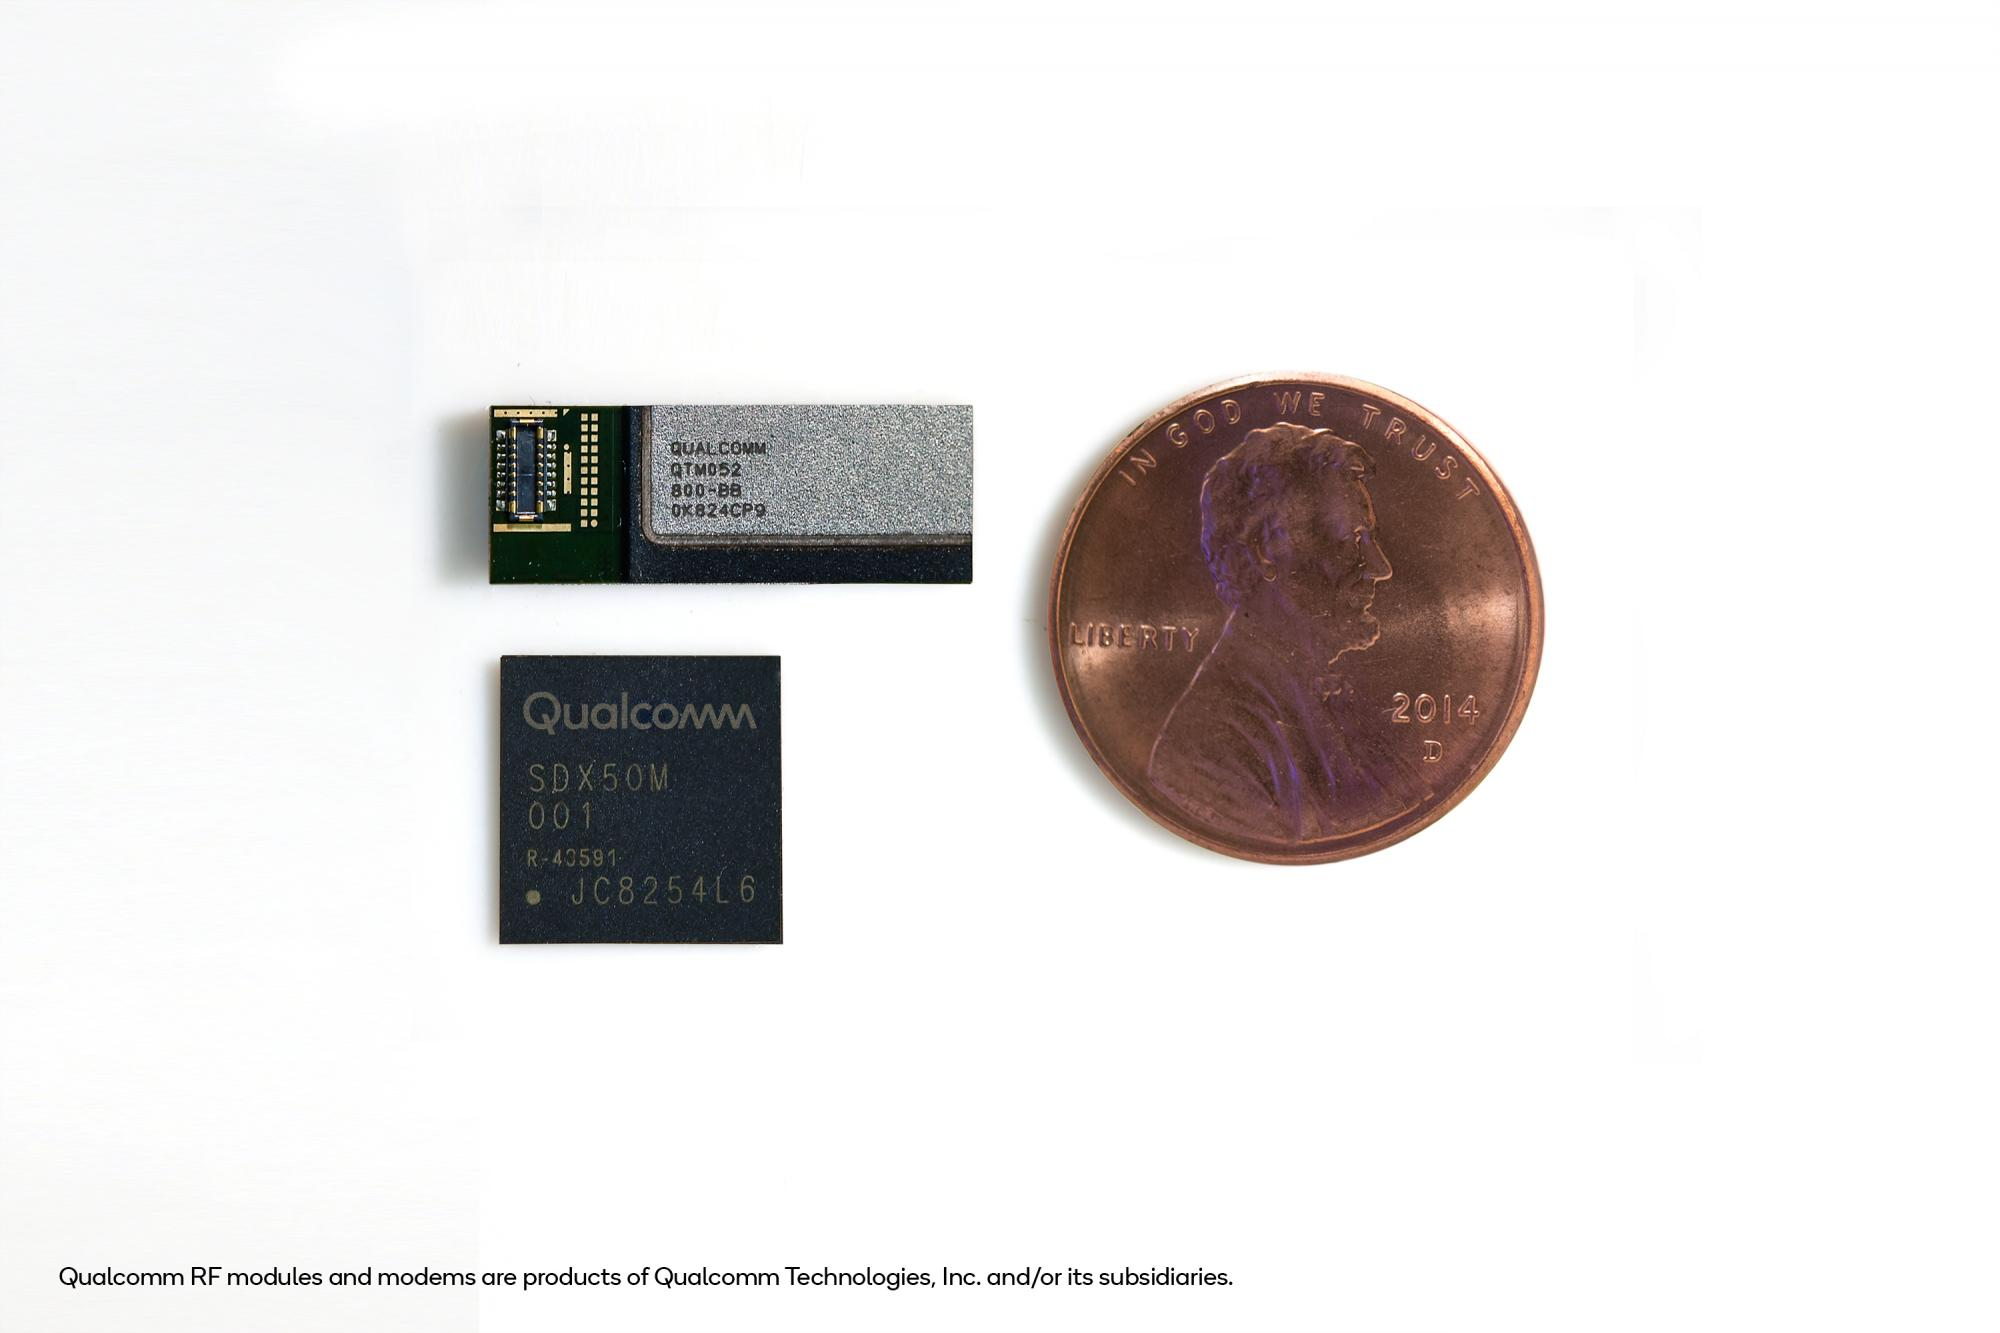 This tiny antenna could help future phones get ready for 5G speeds